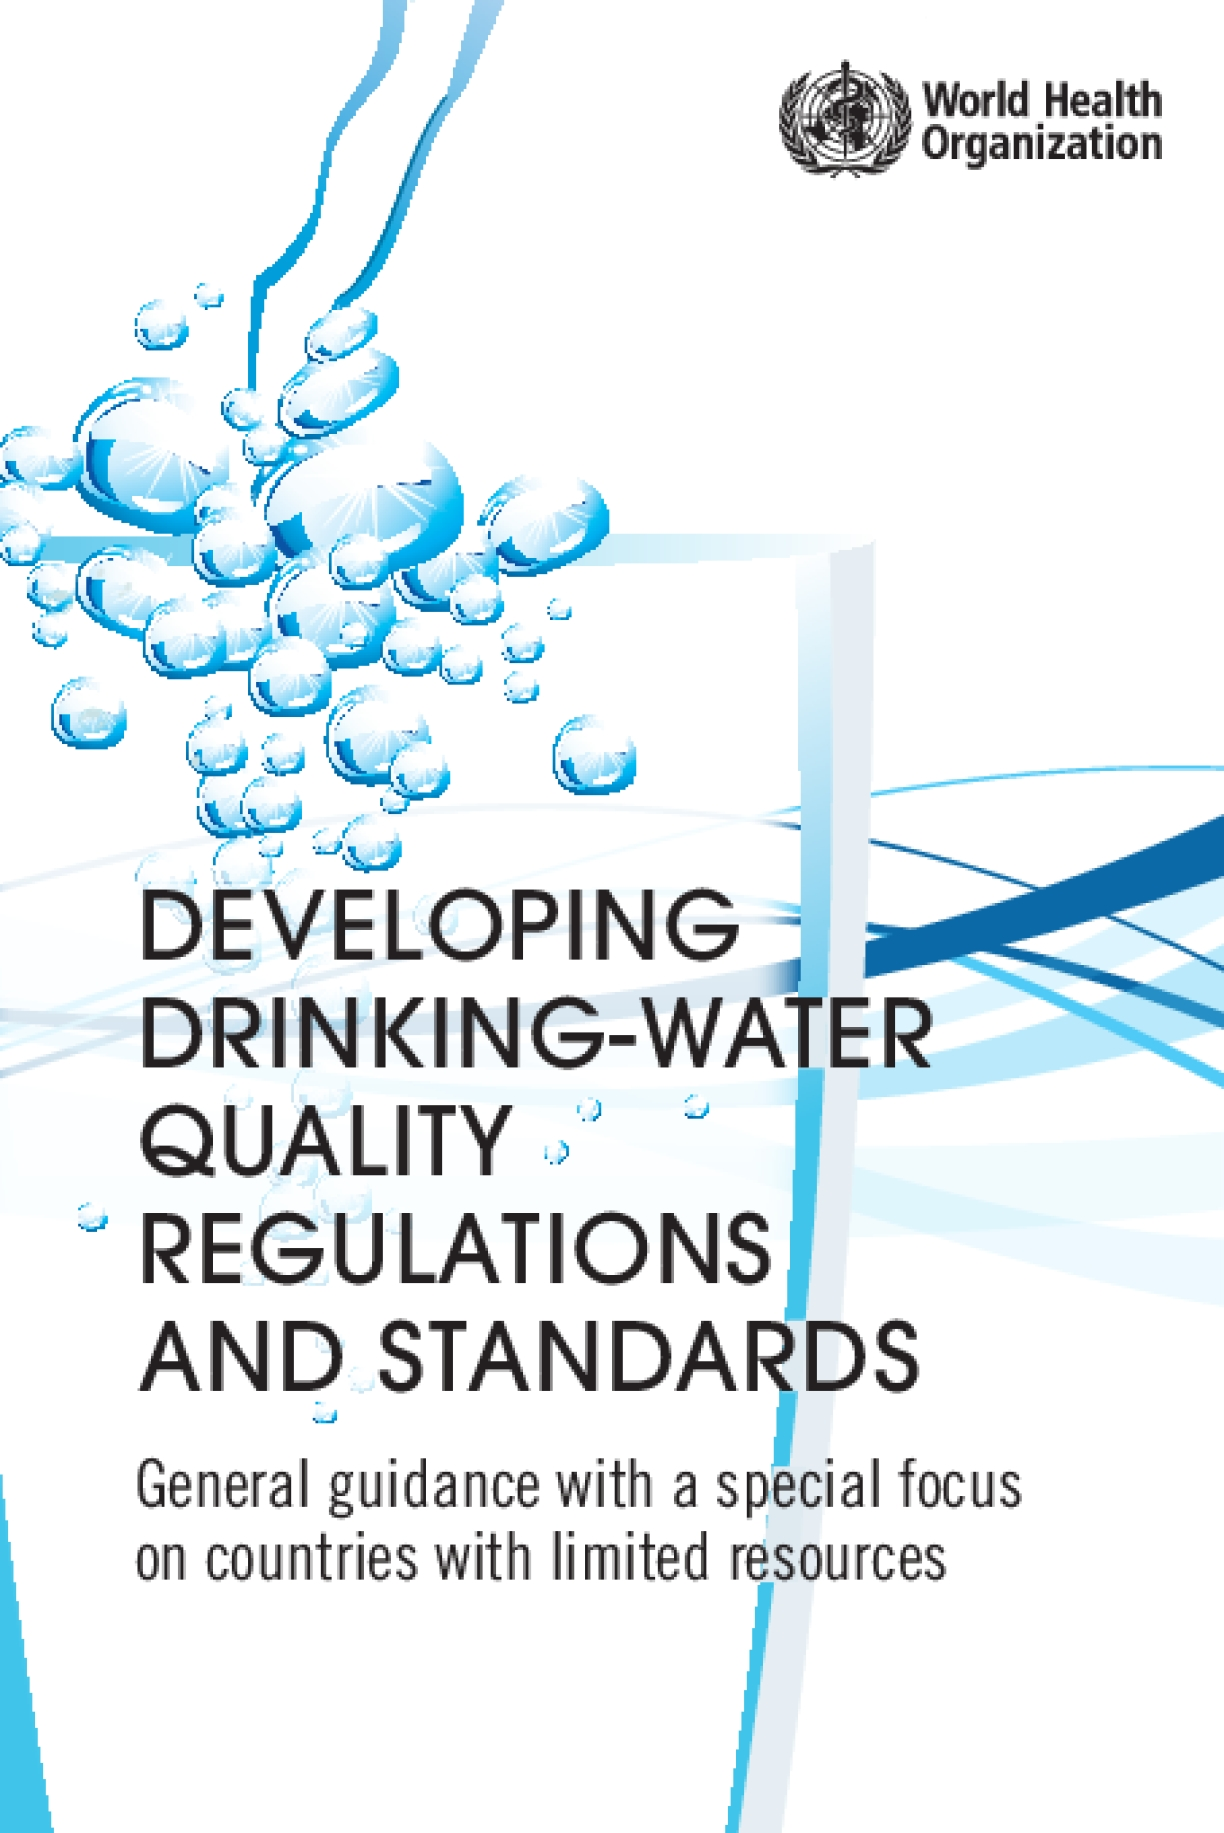 Developing Drinking-Water Quality Regulations and Standards